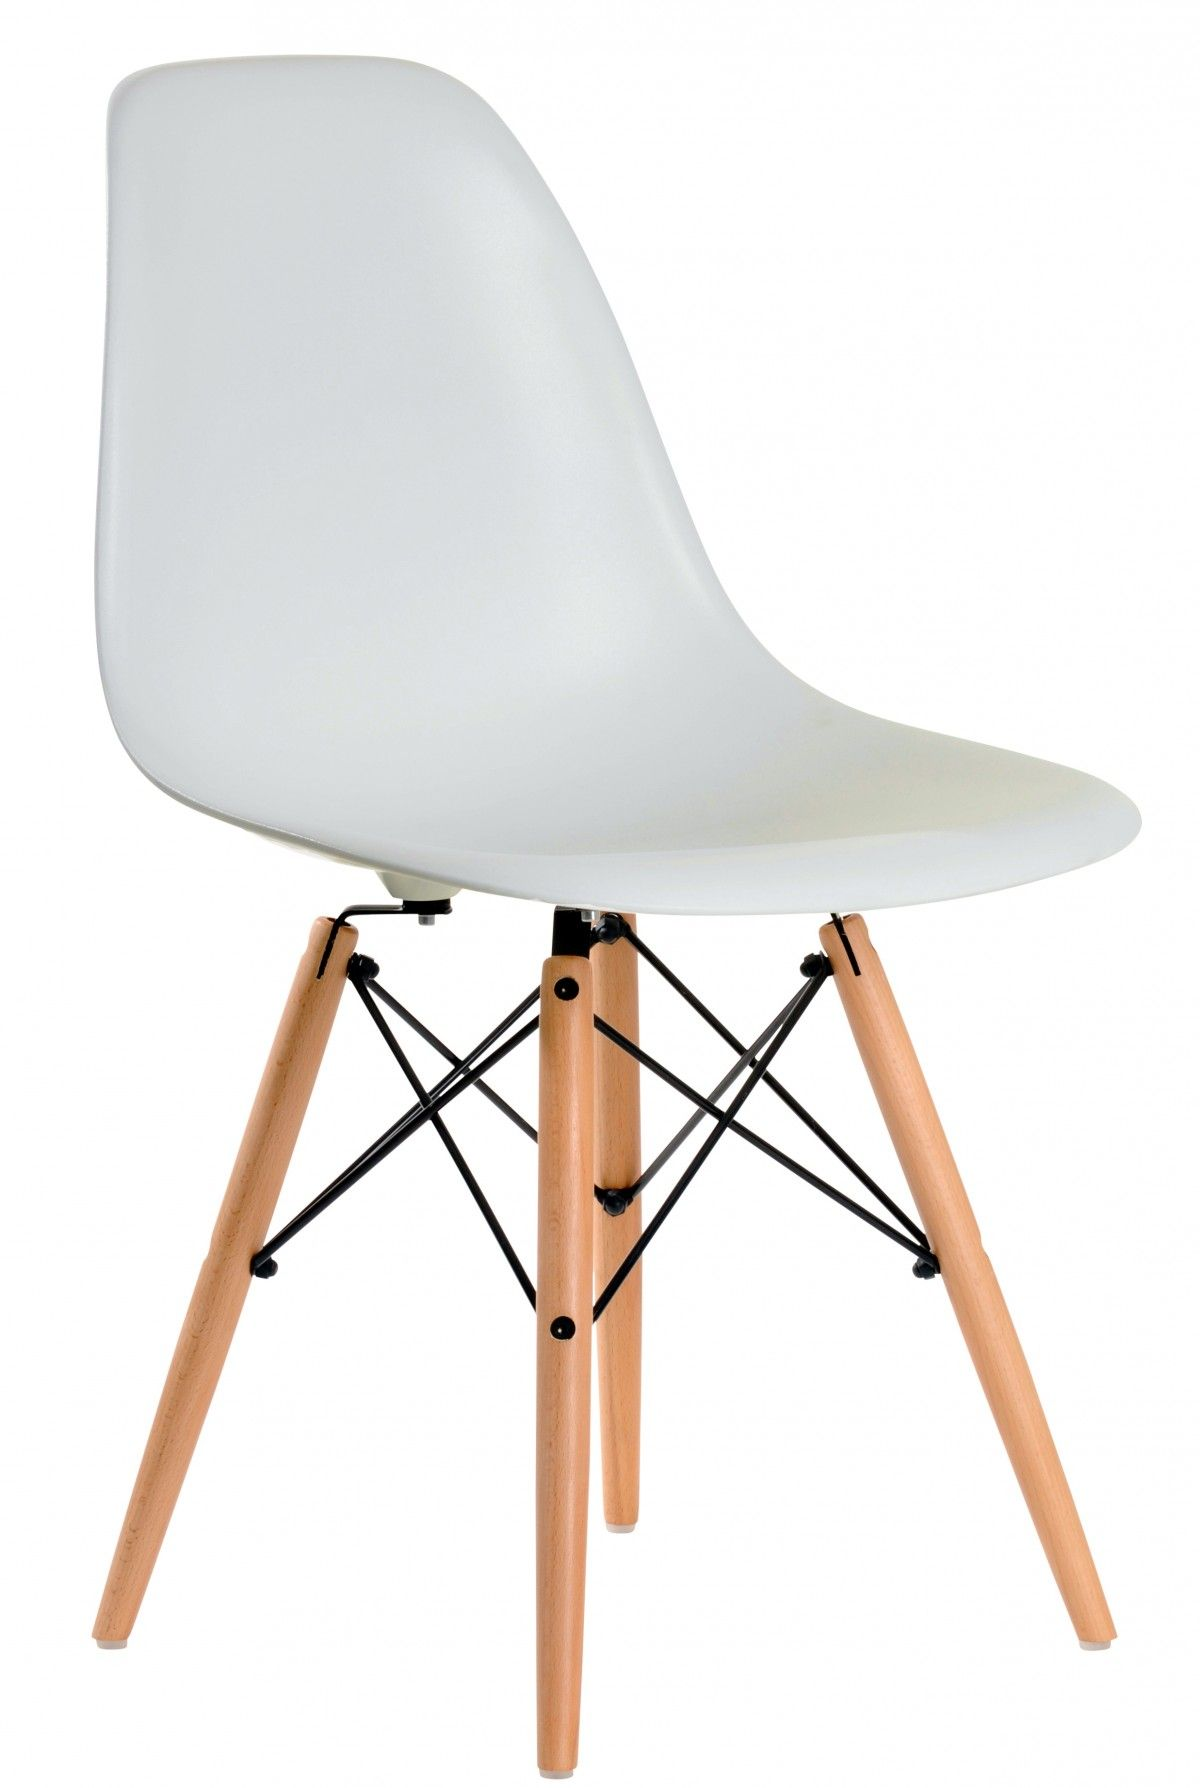 Charles Eames Stuhl Eames Dsw Chair - Stühle - Stühle | Goodfurn | Eames Stuhl